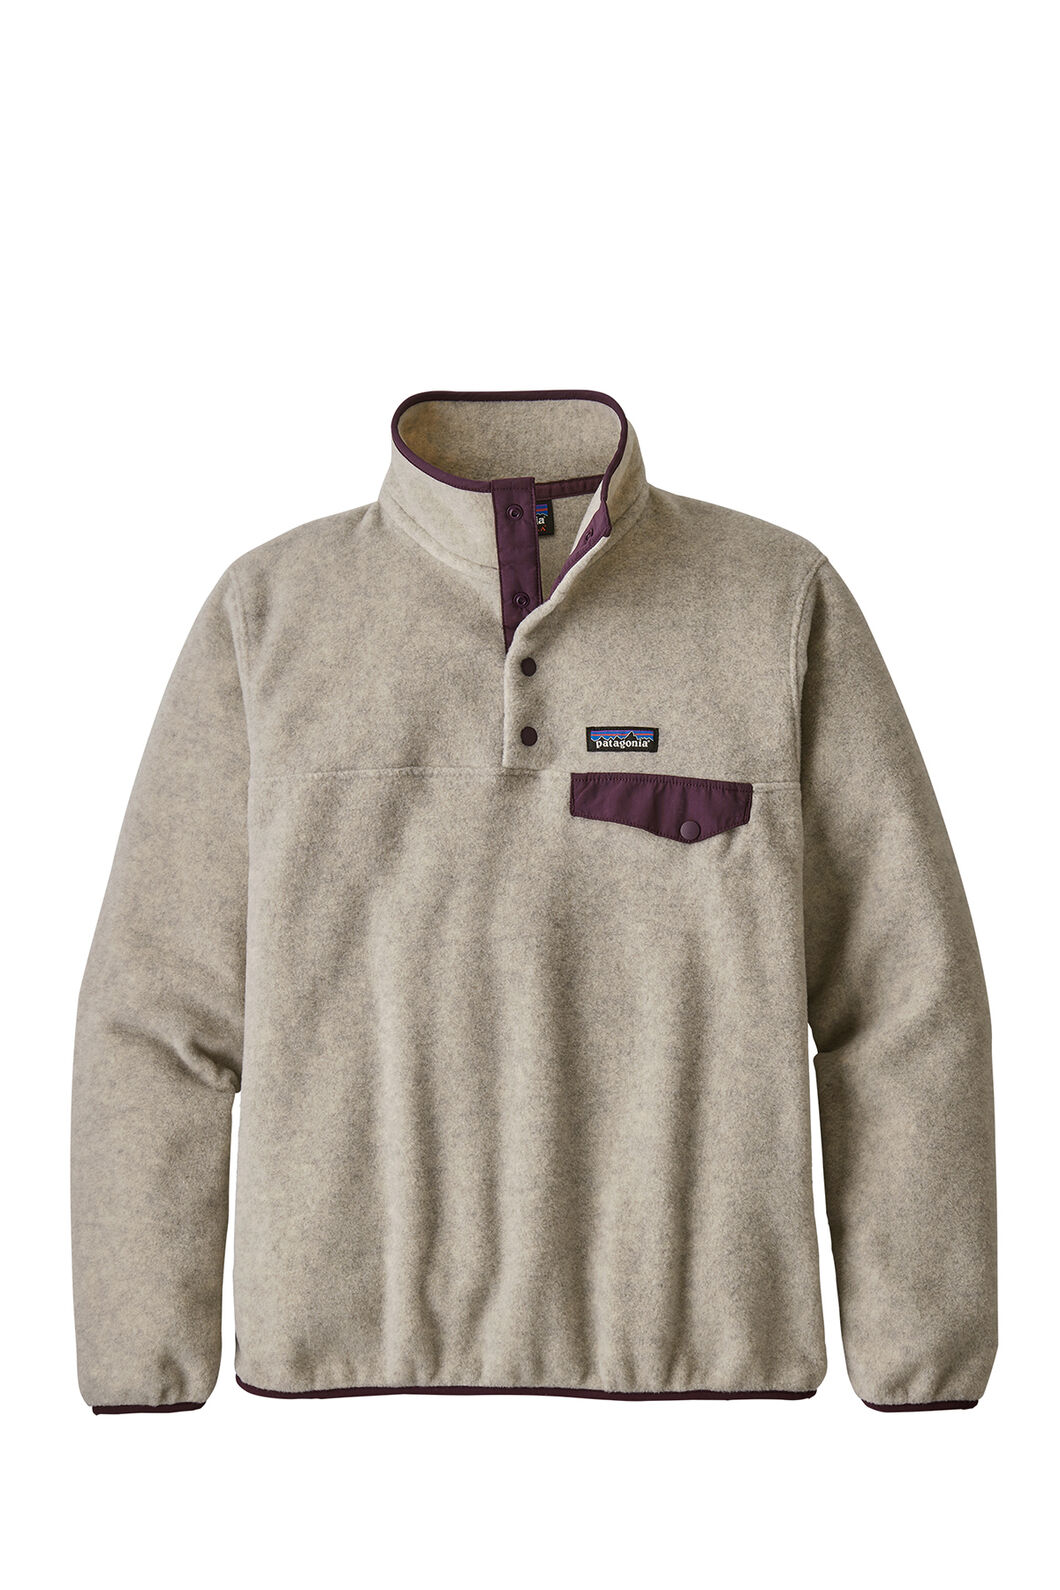 Patagonia LW Synch Snap-T Pullover — Women's, Oatmeal Heather, hi-res